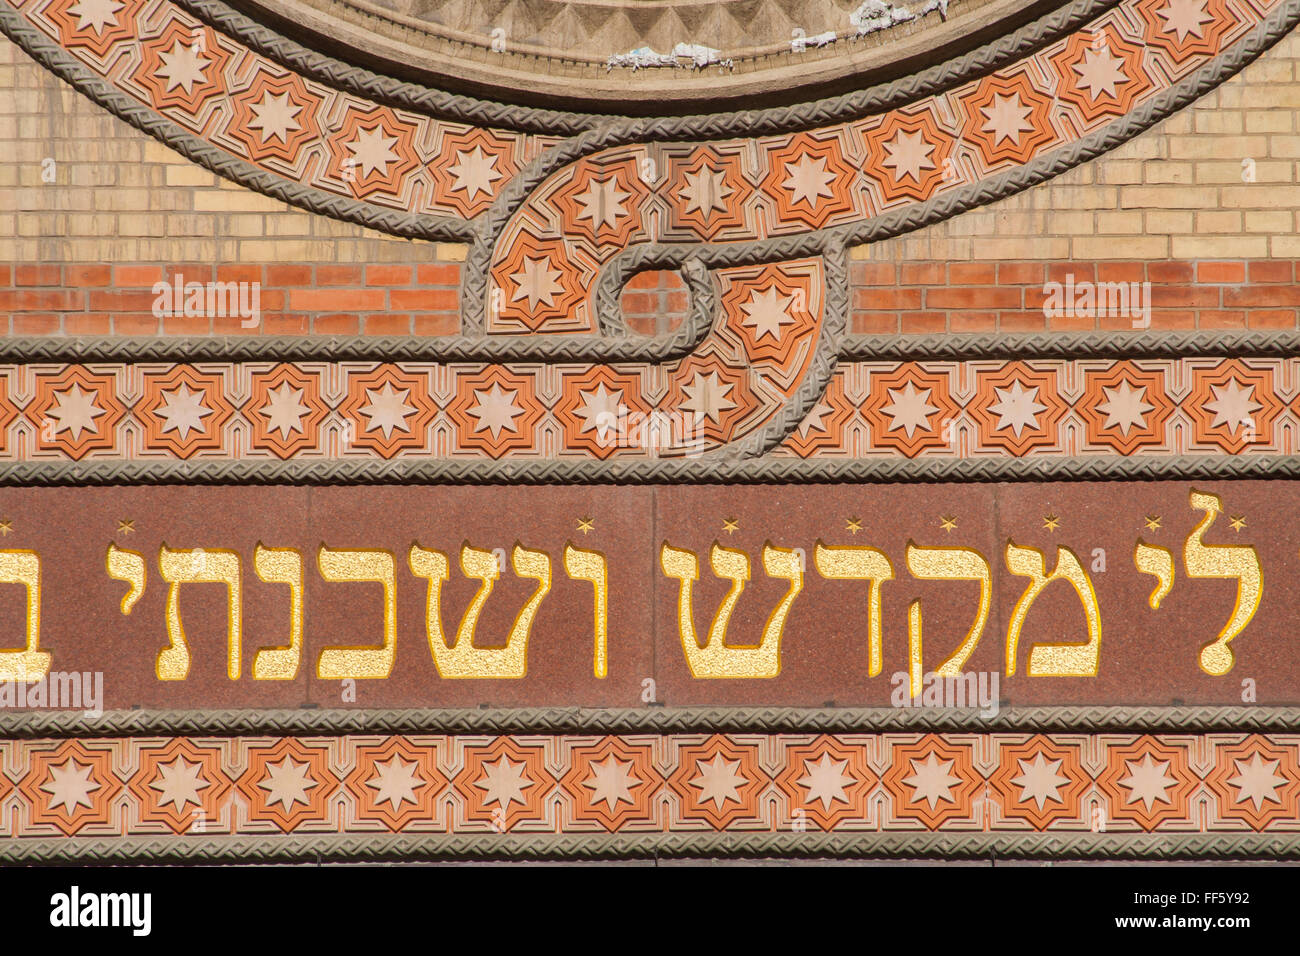 Hebrew inscription on the facade of the Great Synagogue, Budapest, Hungary - Stock Image